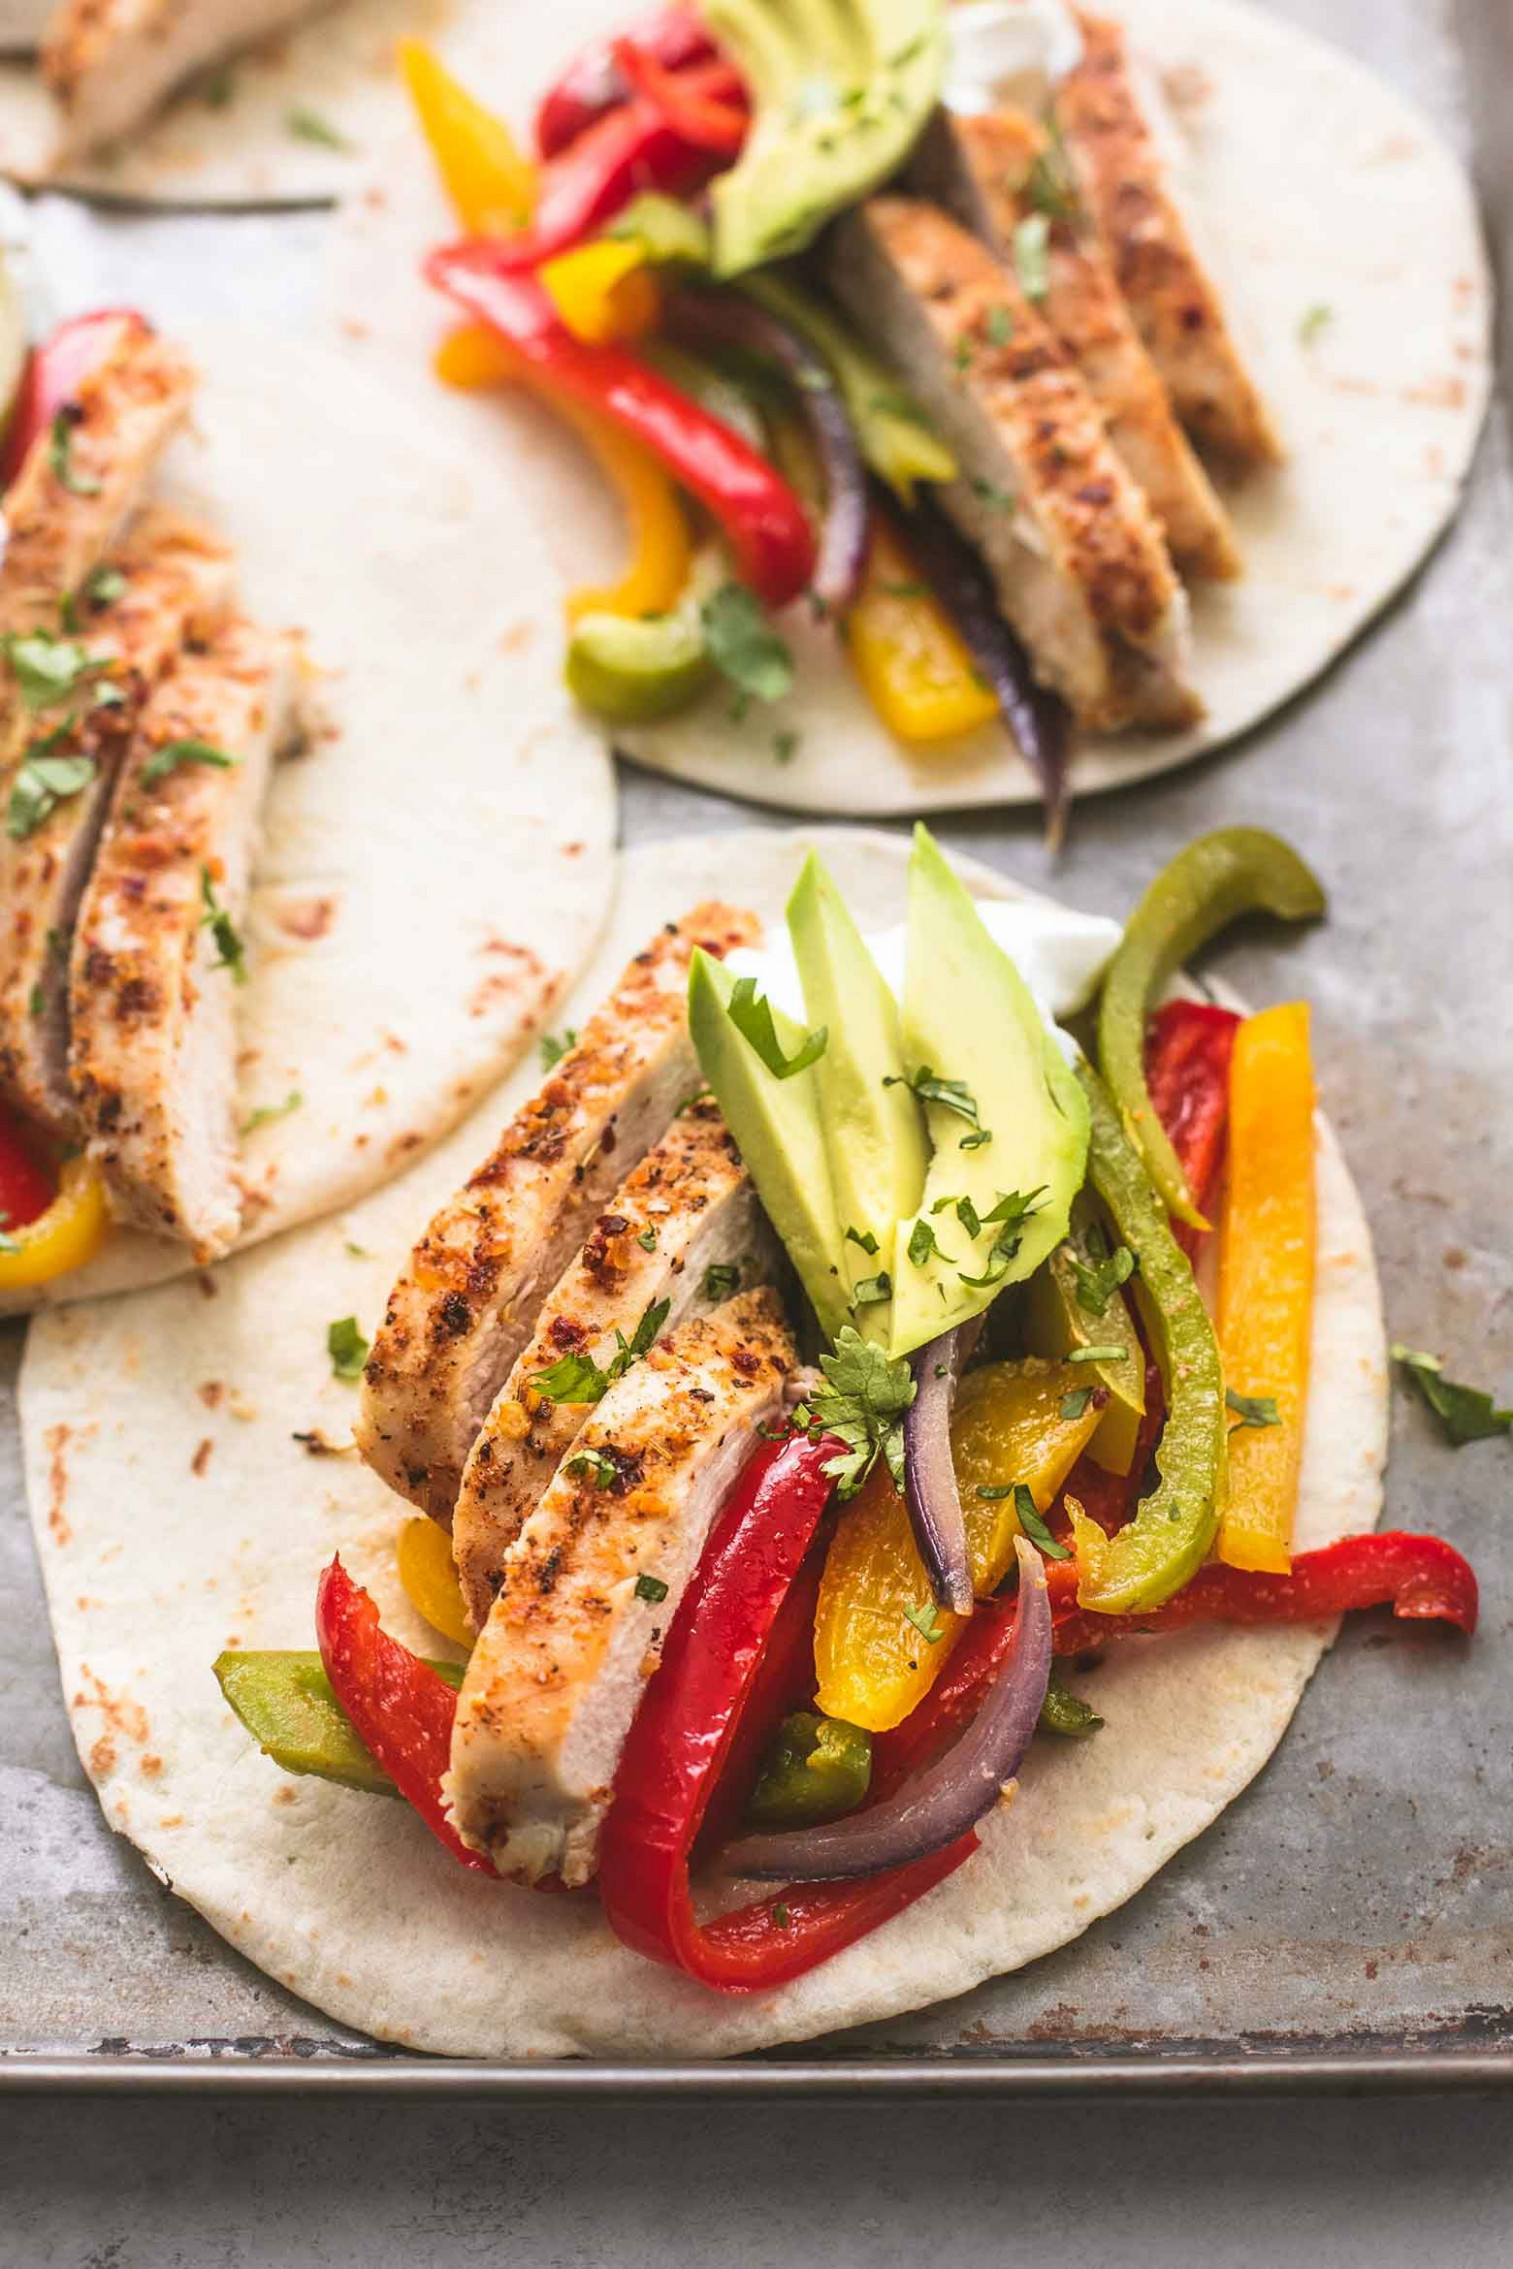 11 Easy Healthy Dinner Recipes - Best Healthy Meal Ideas For ..